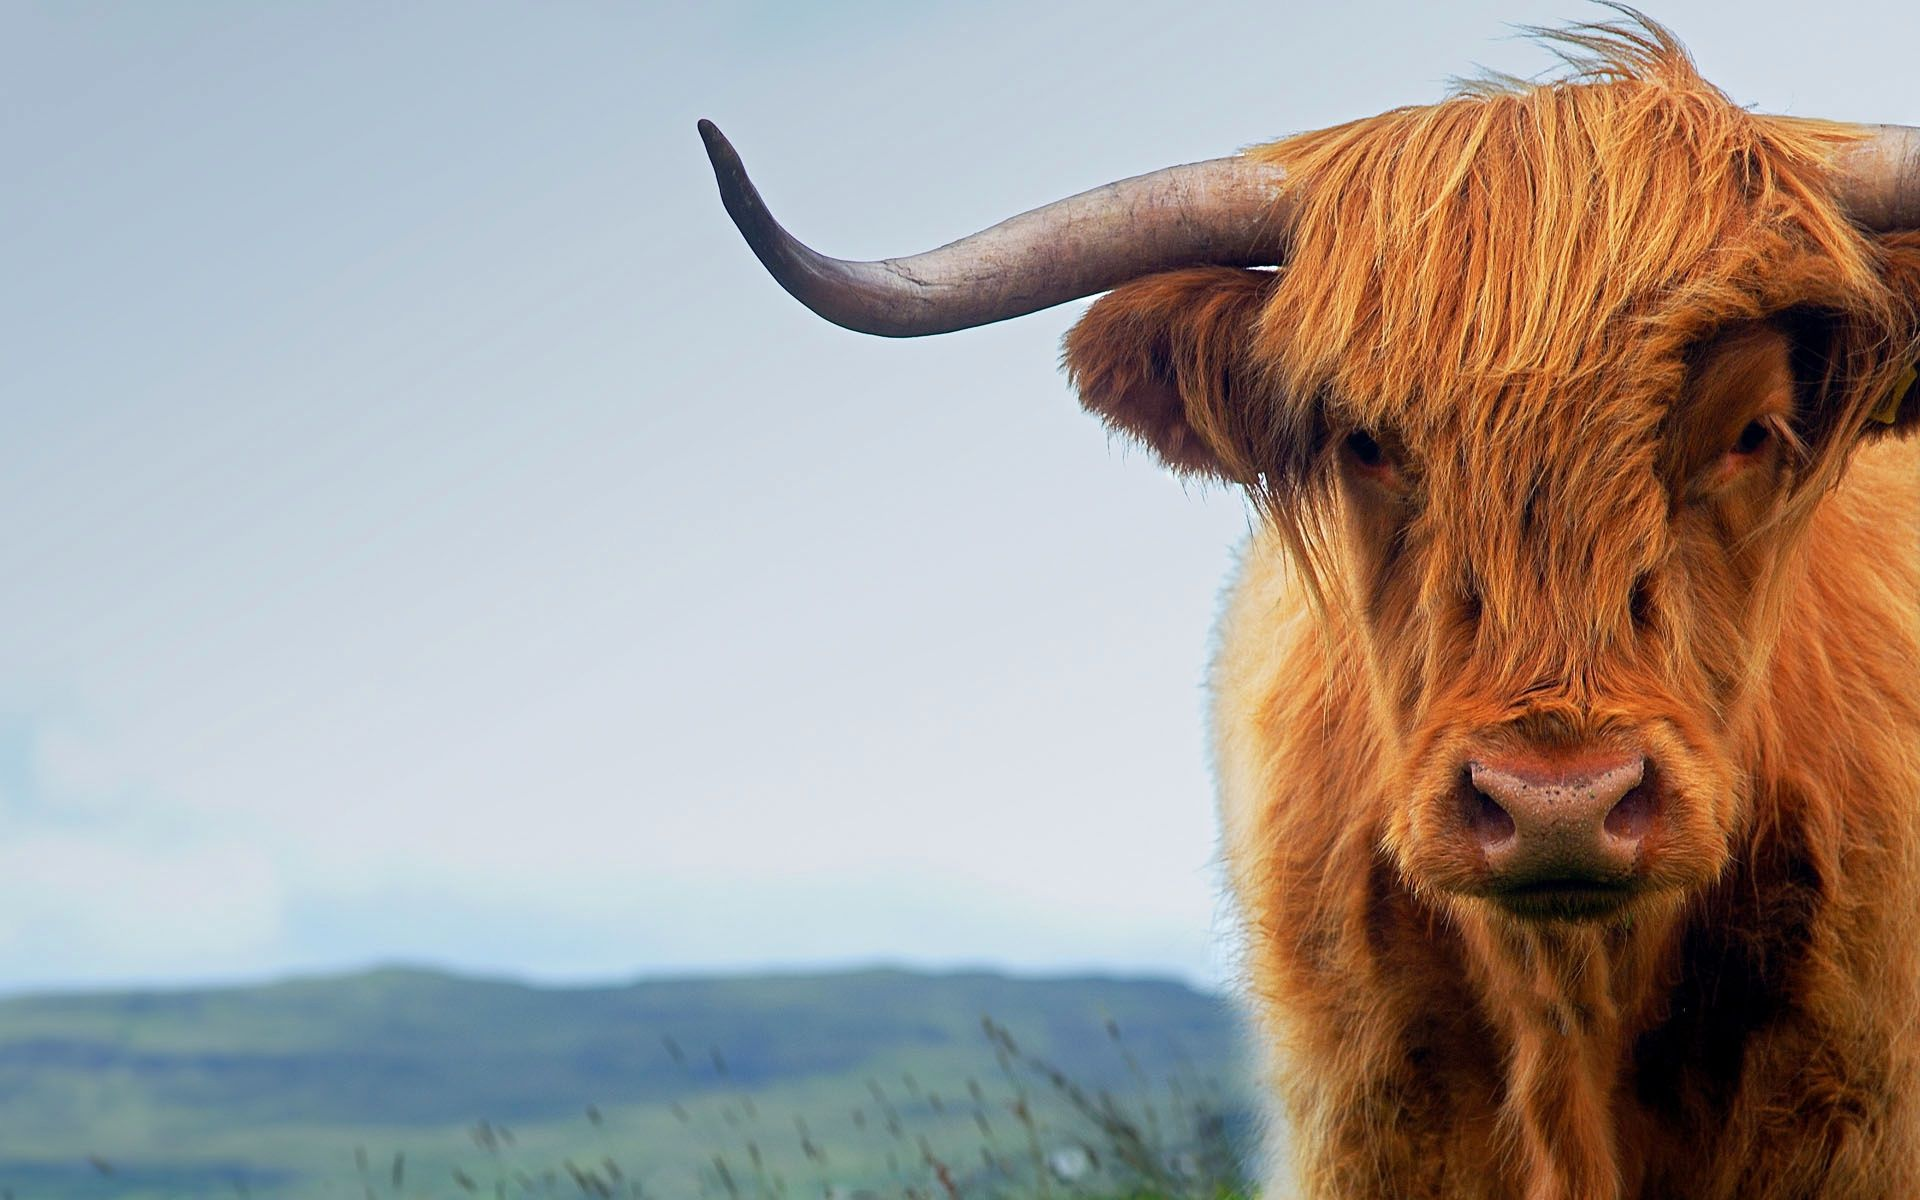 Cows Wallpapers Downloadeer Simply The Best Fluffy Cows Cow Wallpaper Cow